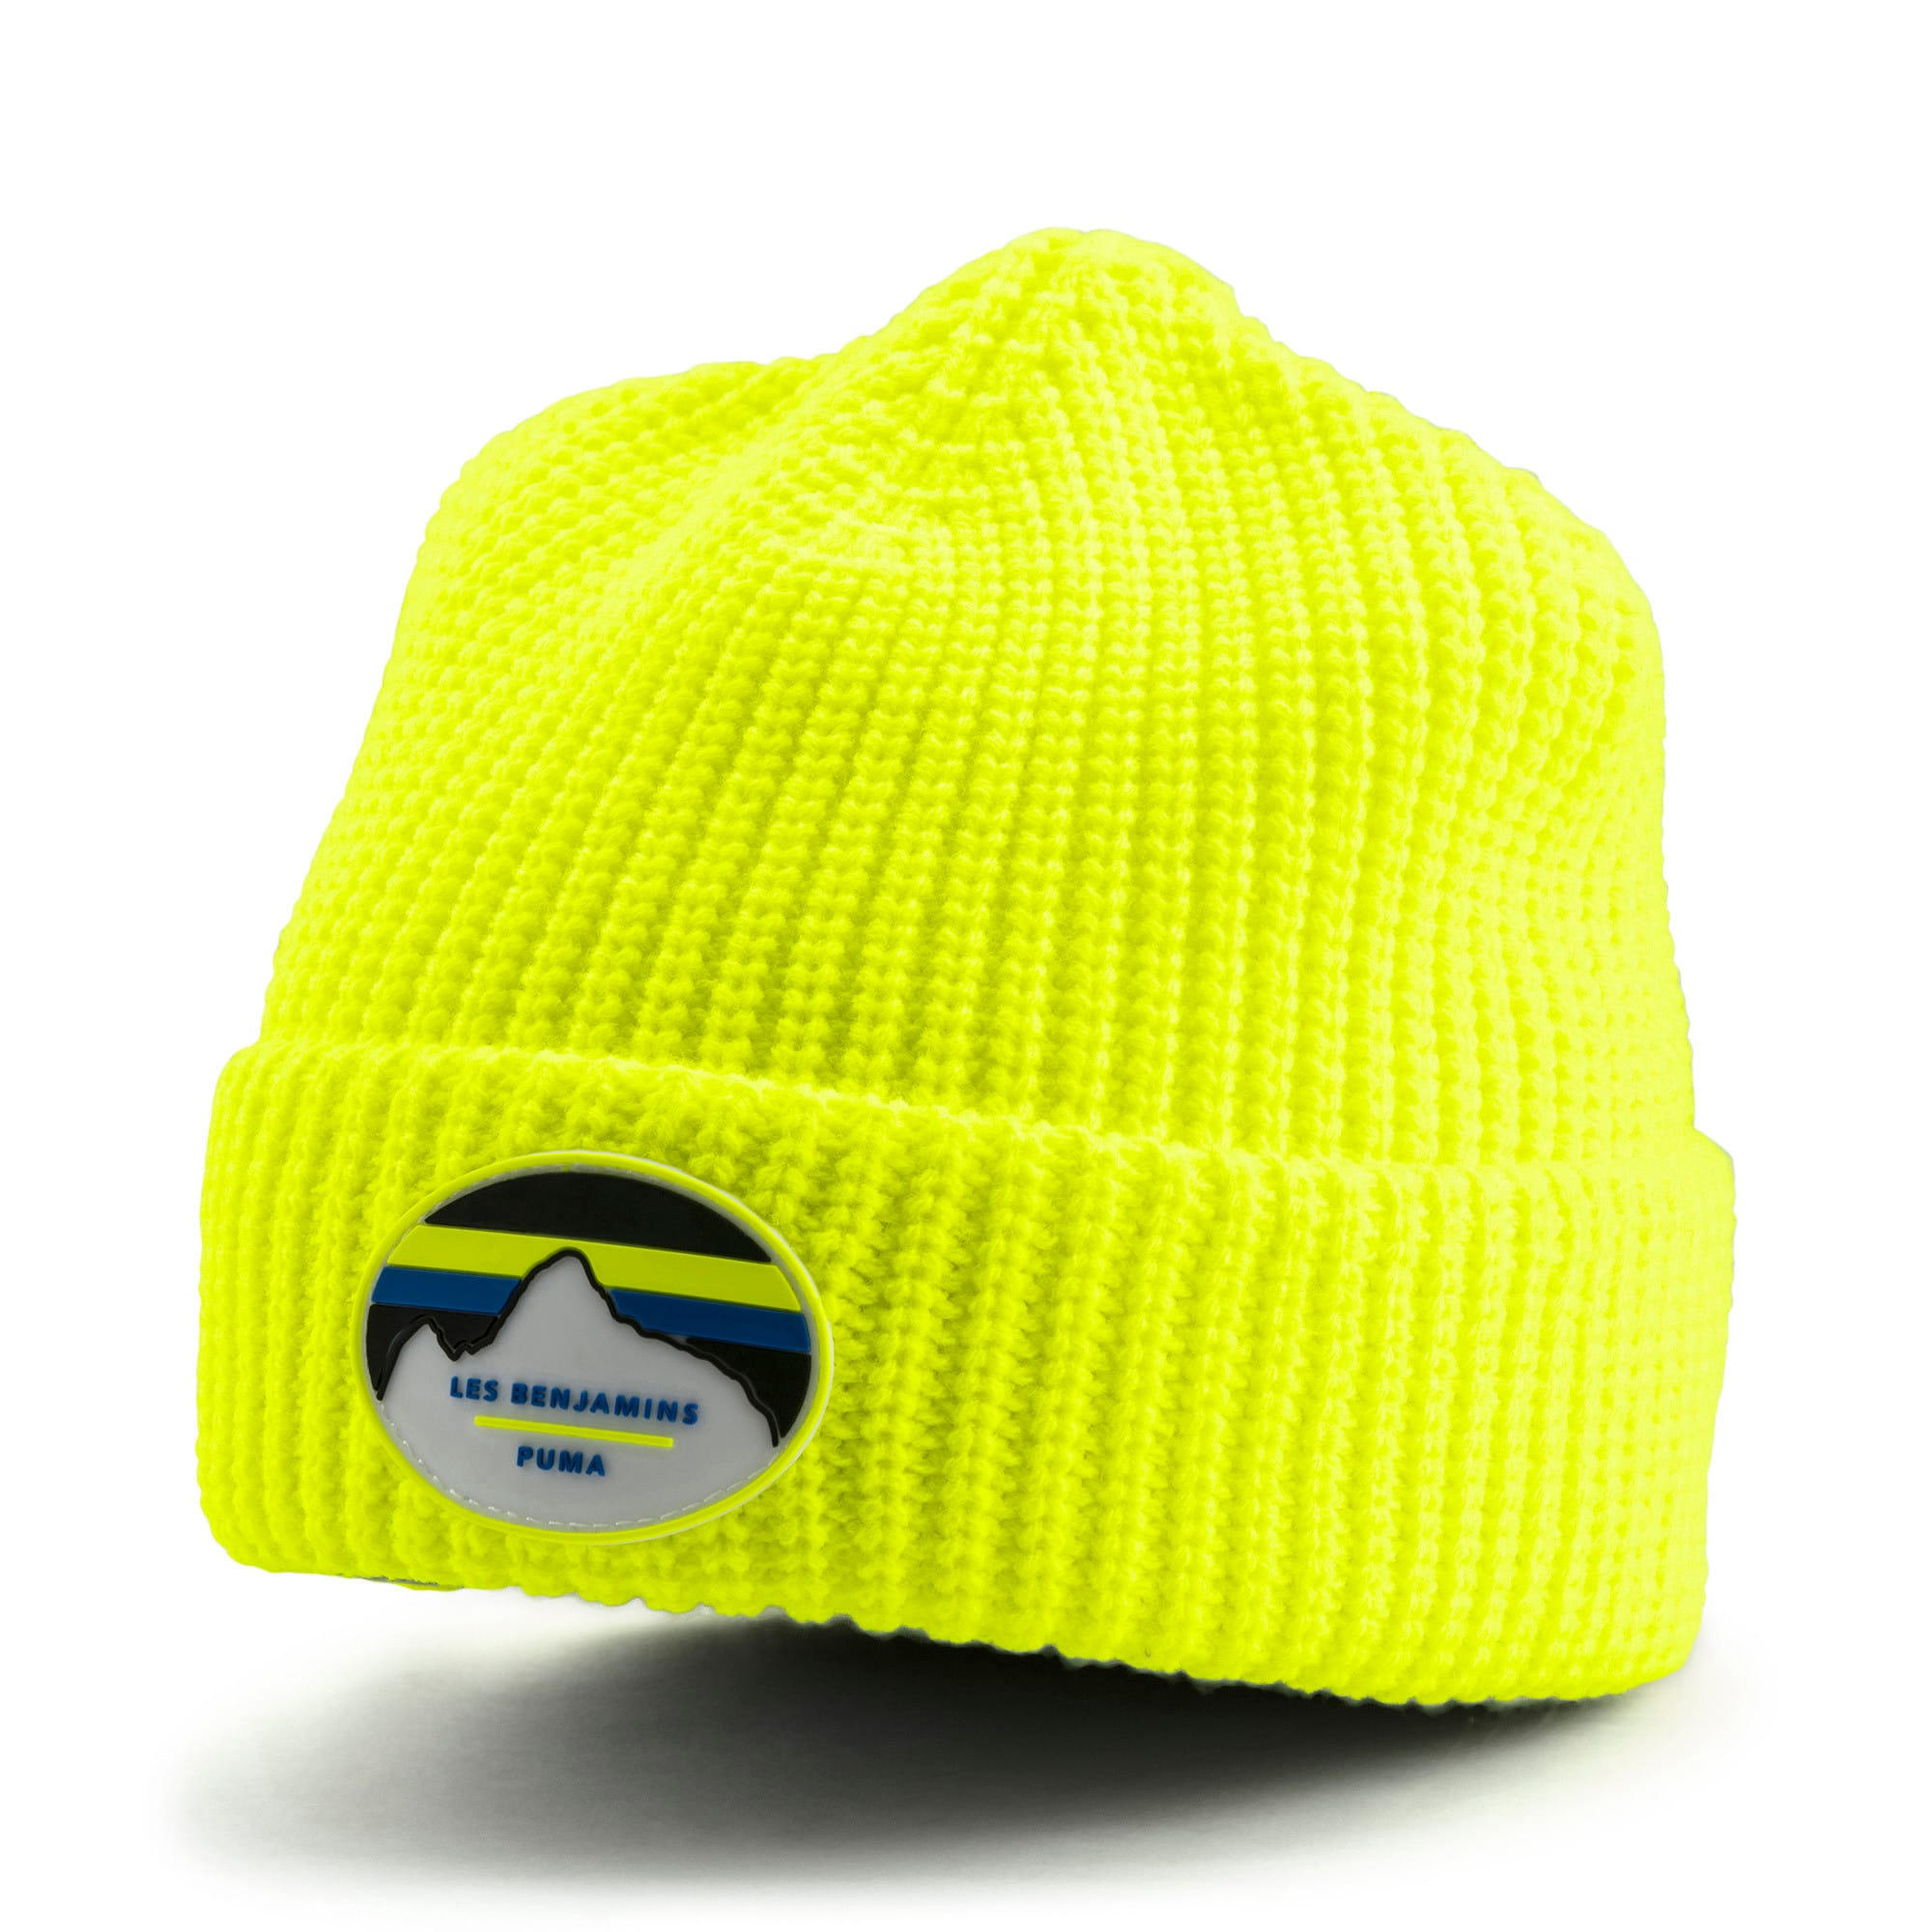 Thumbnail 1 of PUMA x LES BENJAMINS Beanie, Safety Yellow, medium